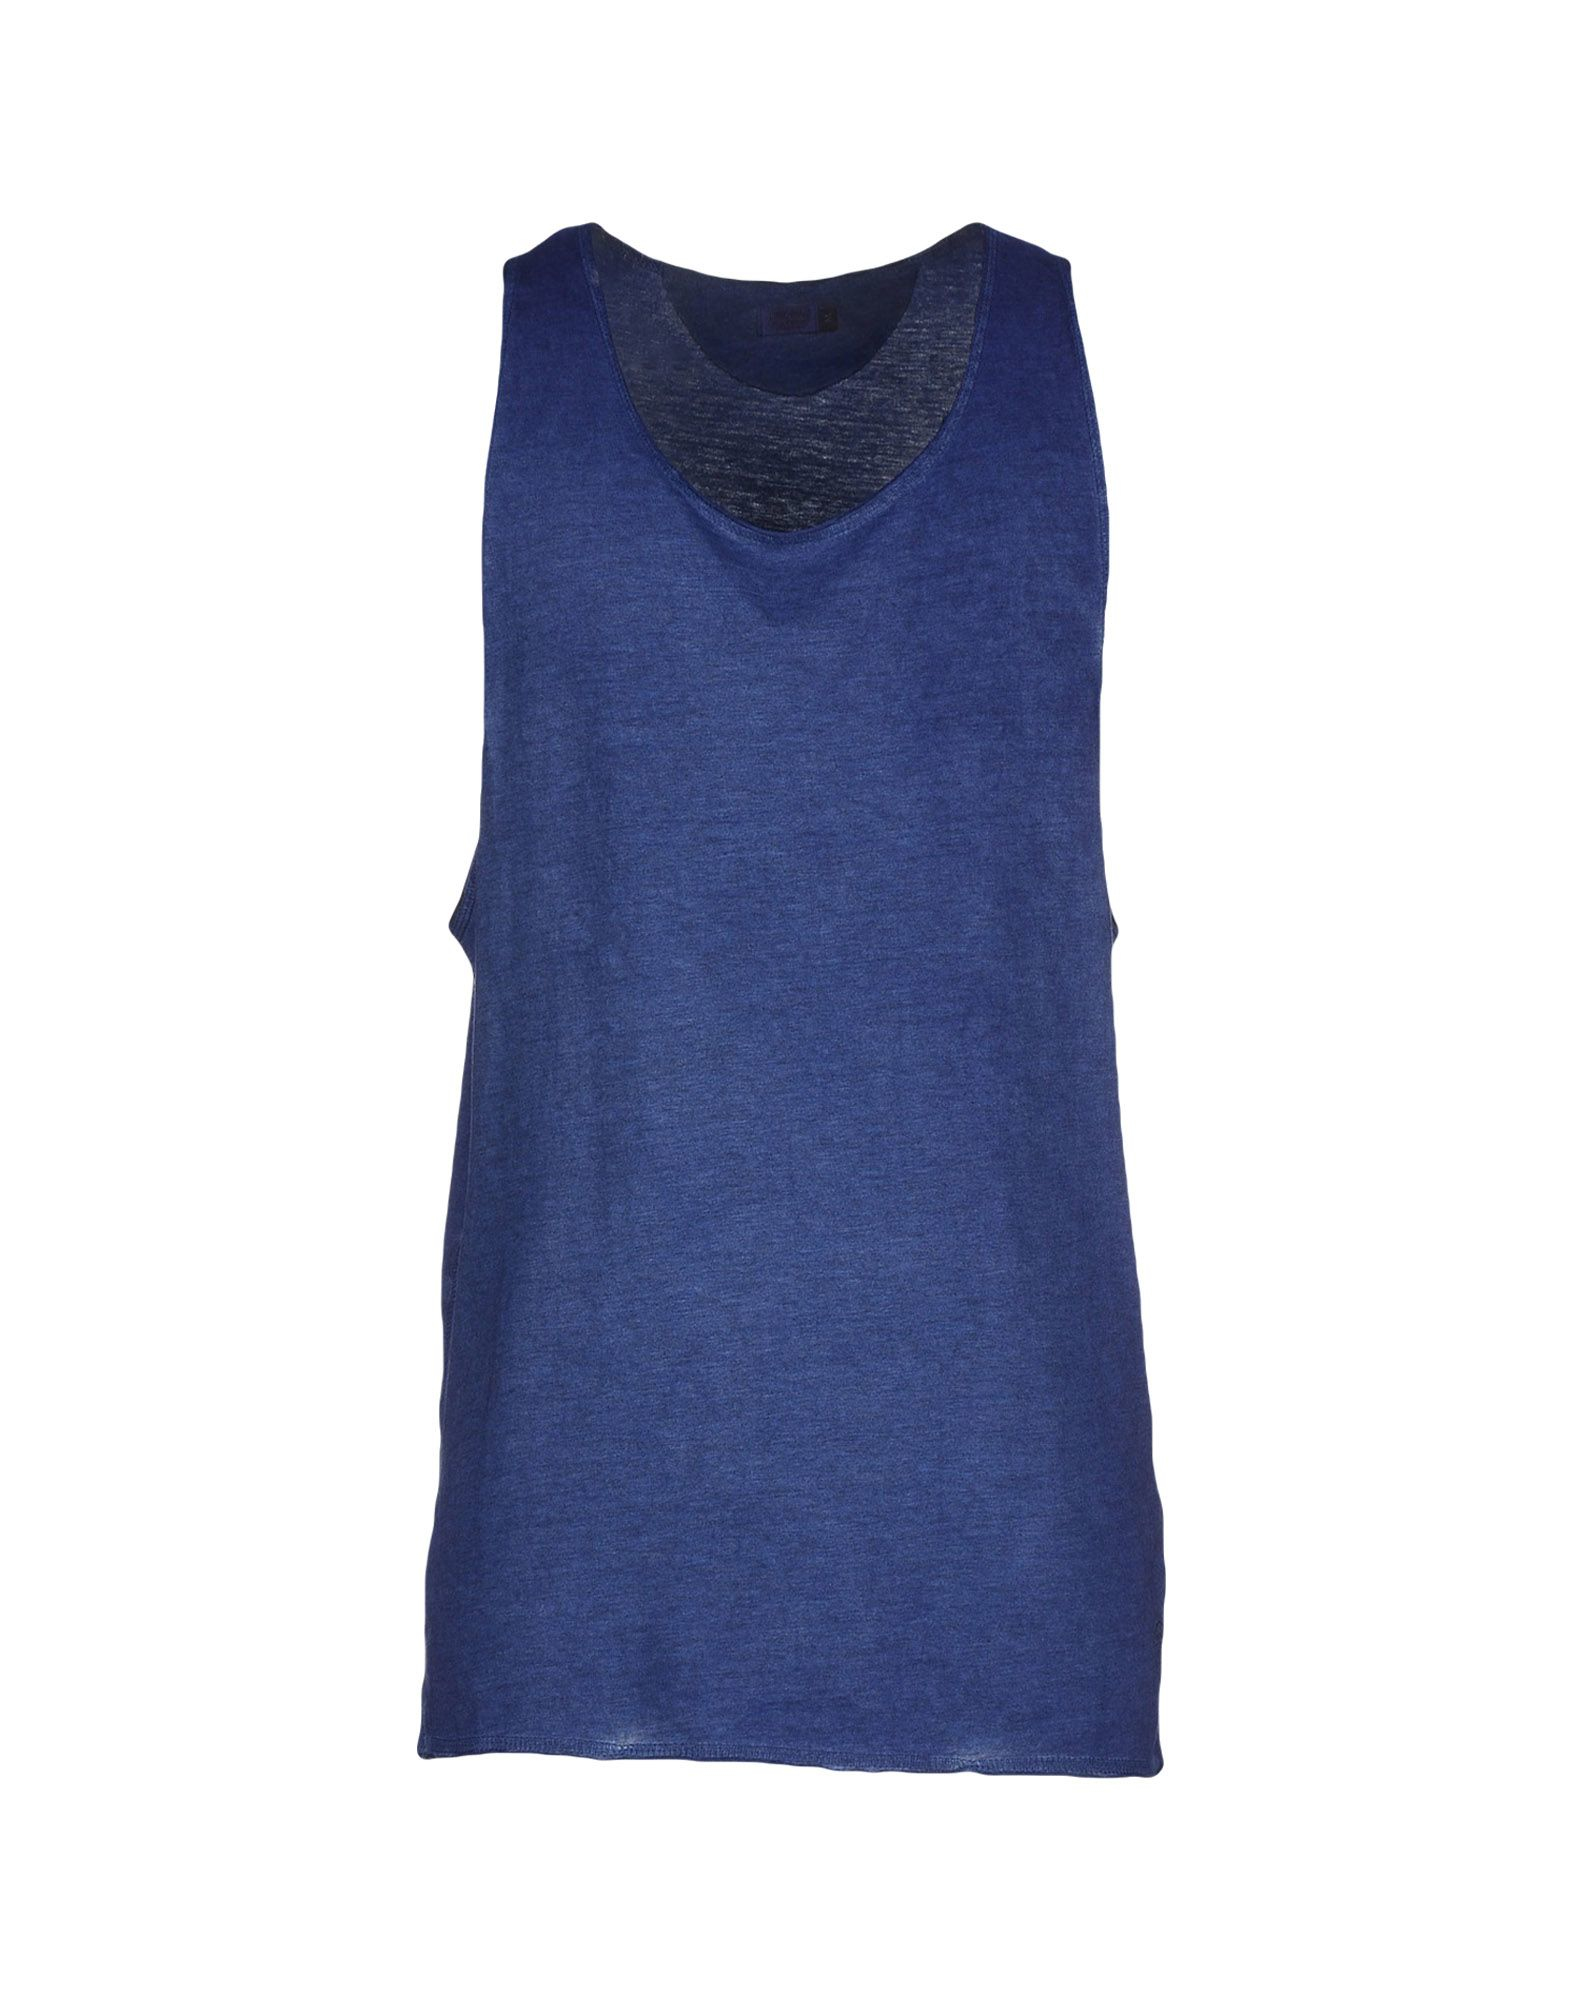 originals by jack jones tank top in blue for men lyst. Black Bedroom Furniture Sets. Home Design Ideas